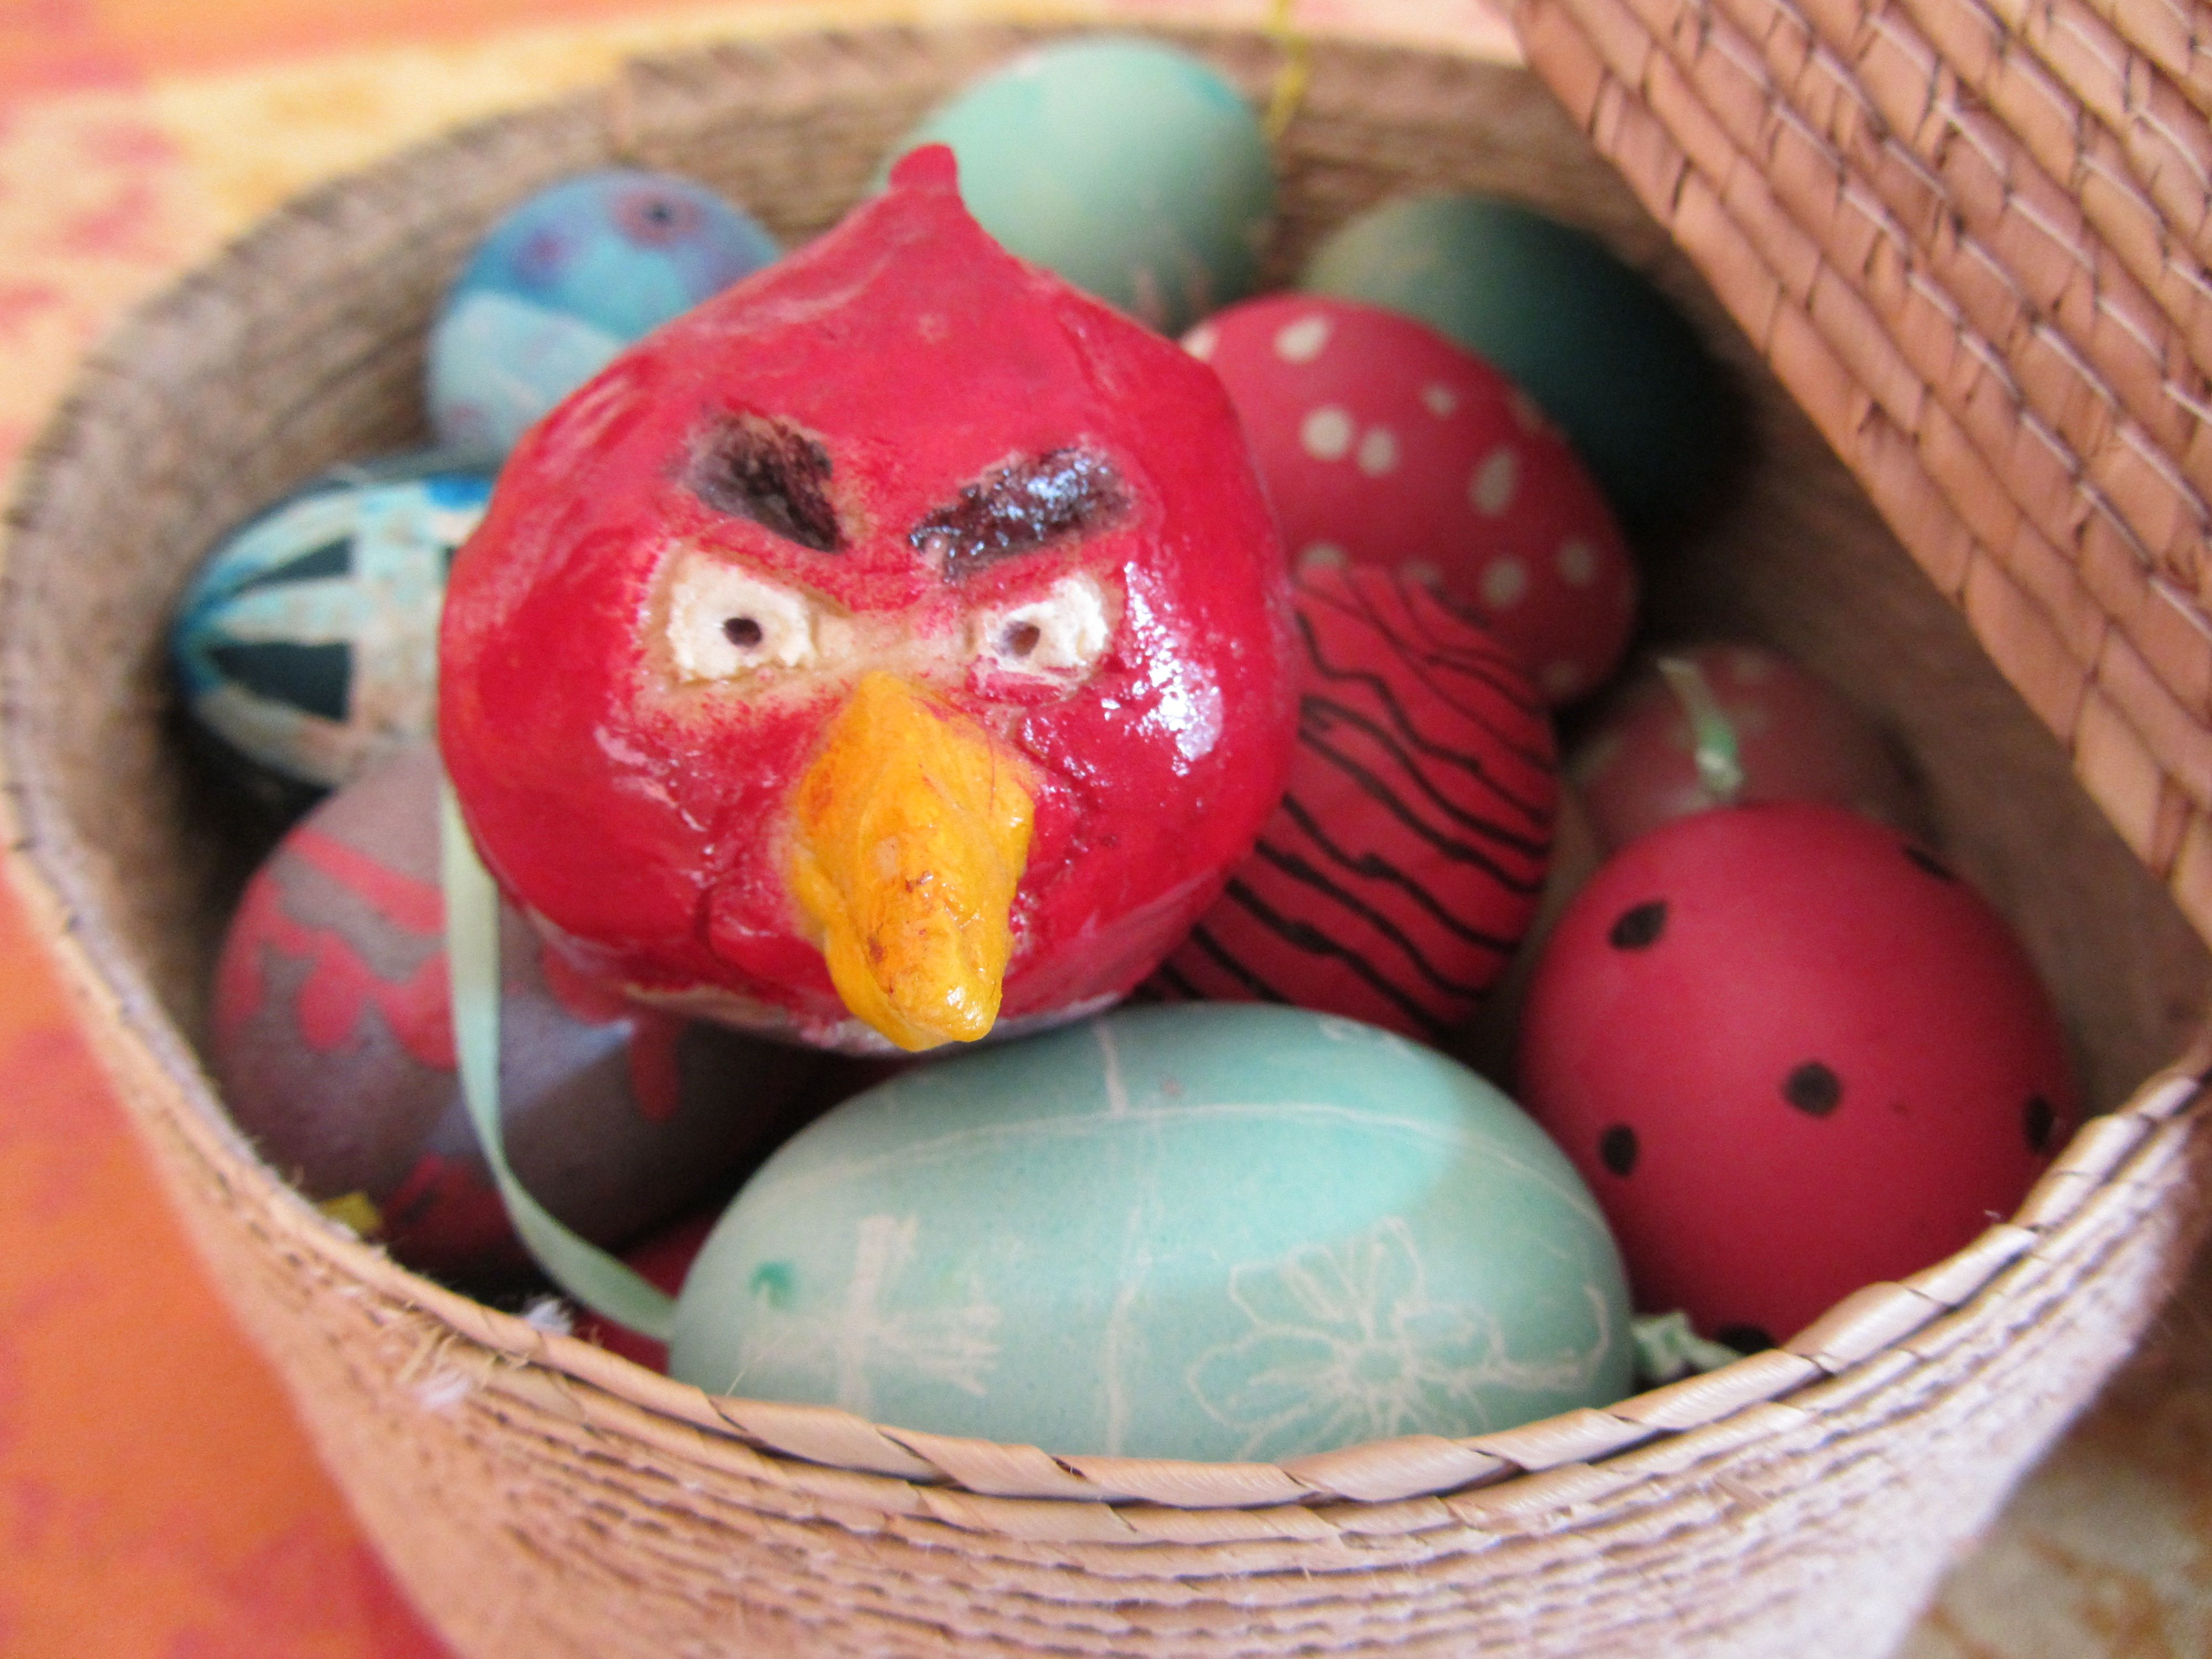 Angry bird in Easter eggs!